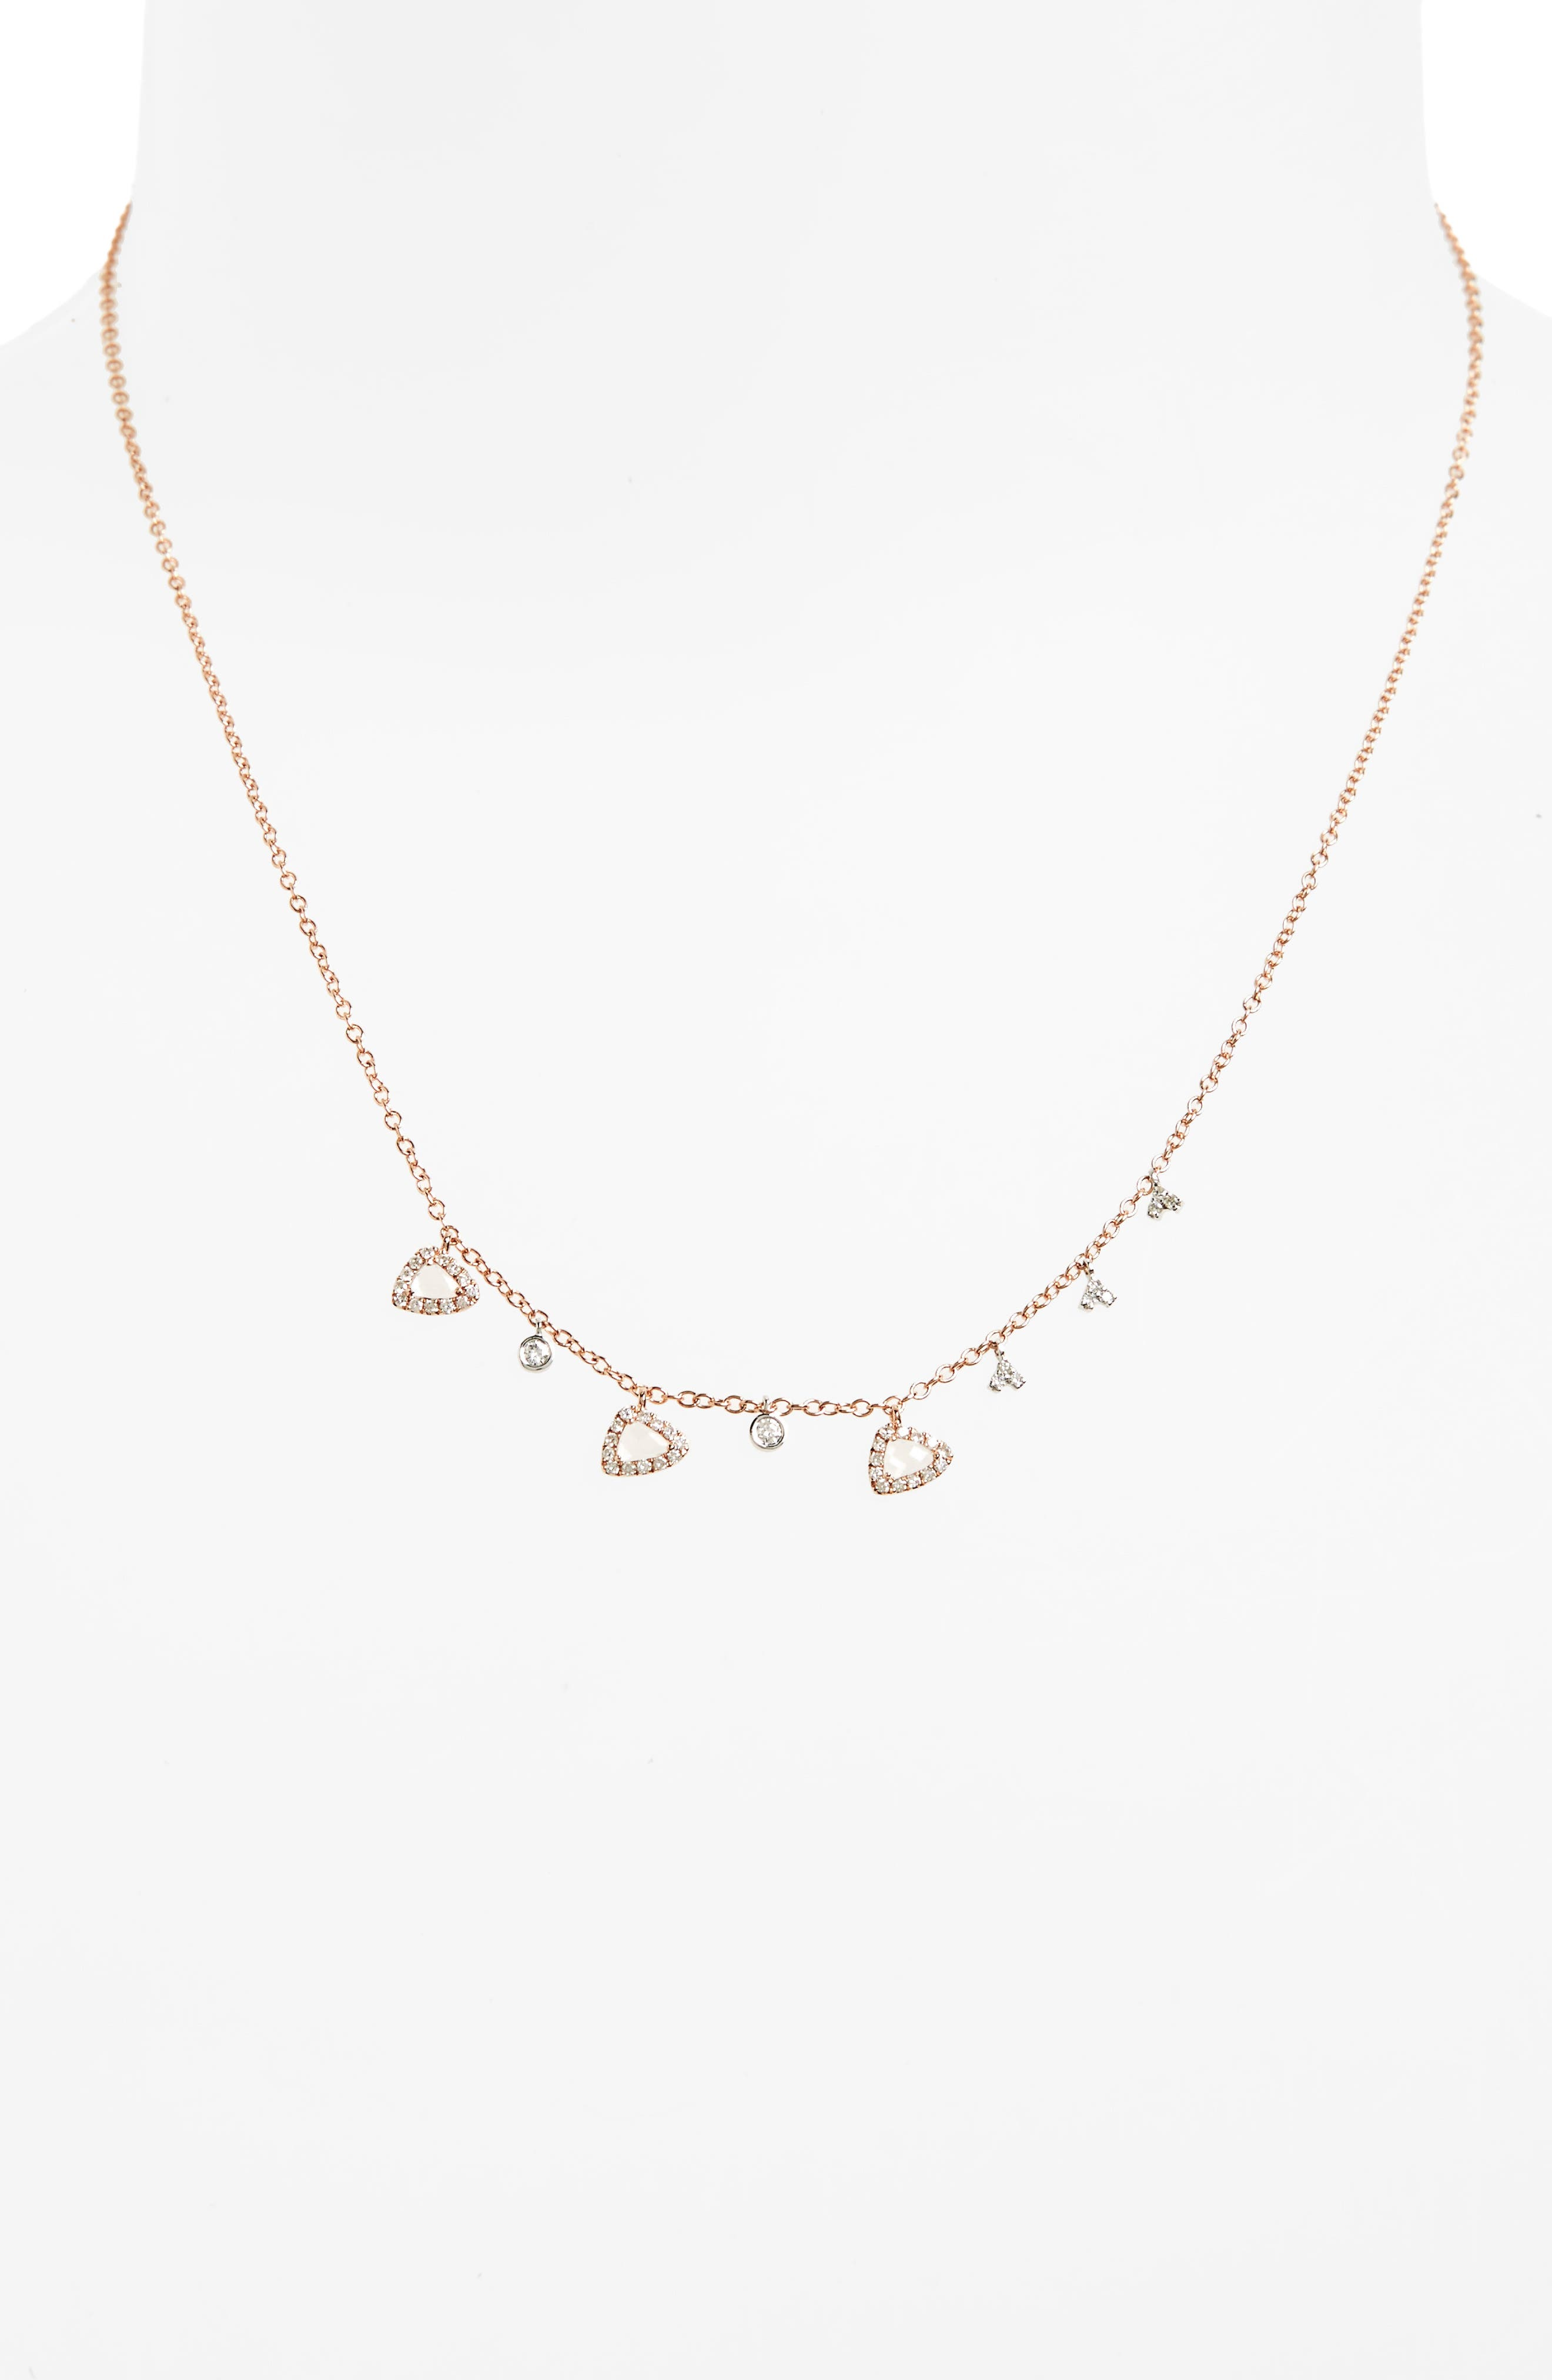 Semiprecious Stone Frontal Necklace,                             Alternate thumbnail 2, color,                             Rose Gold